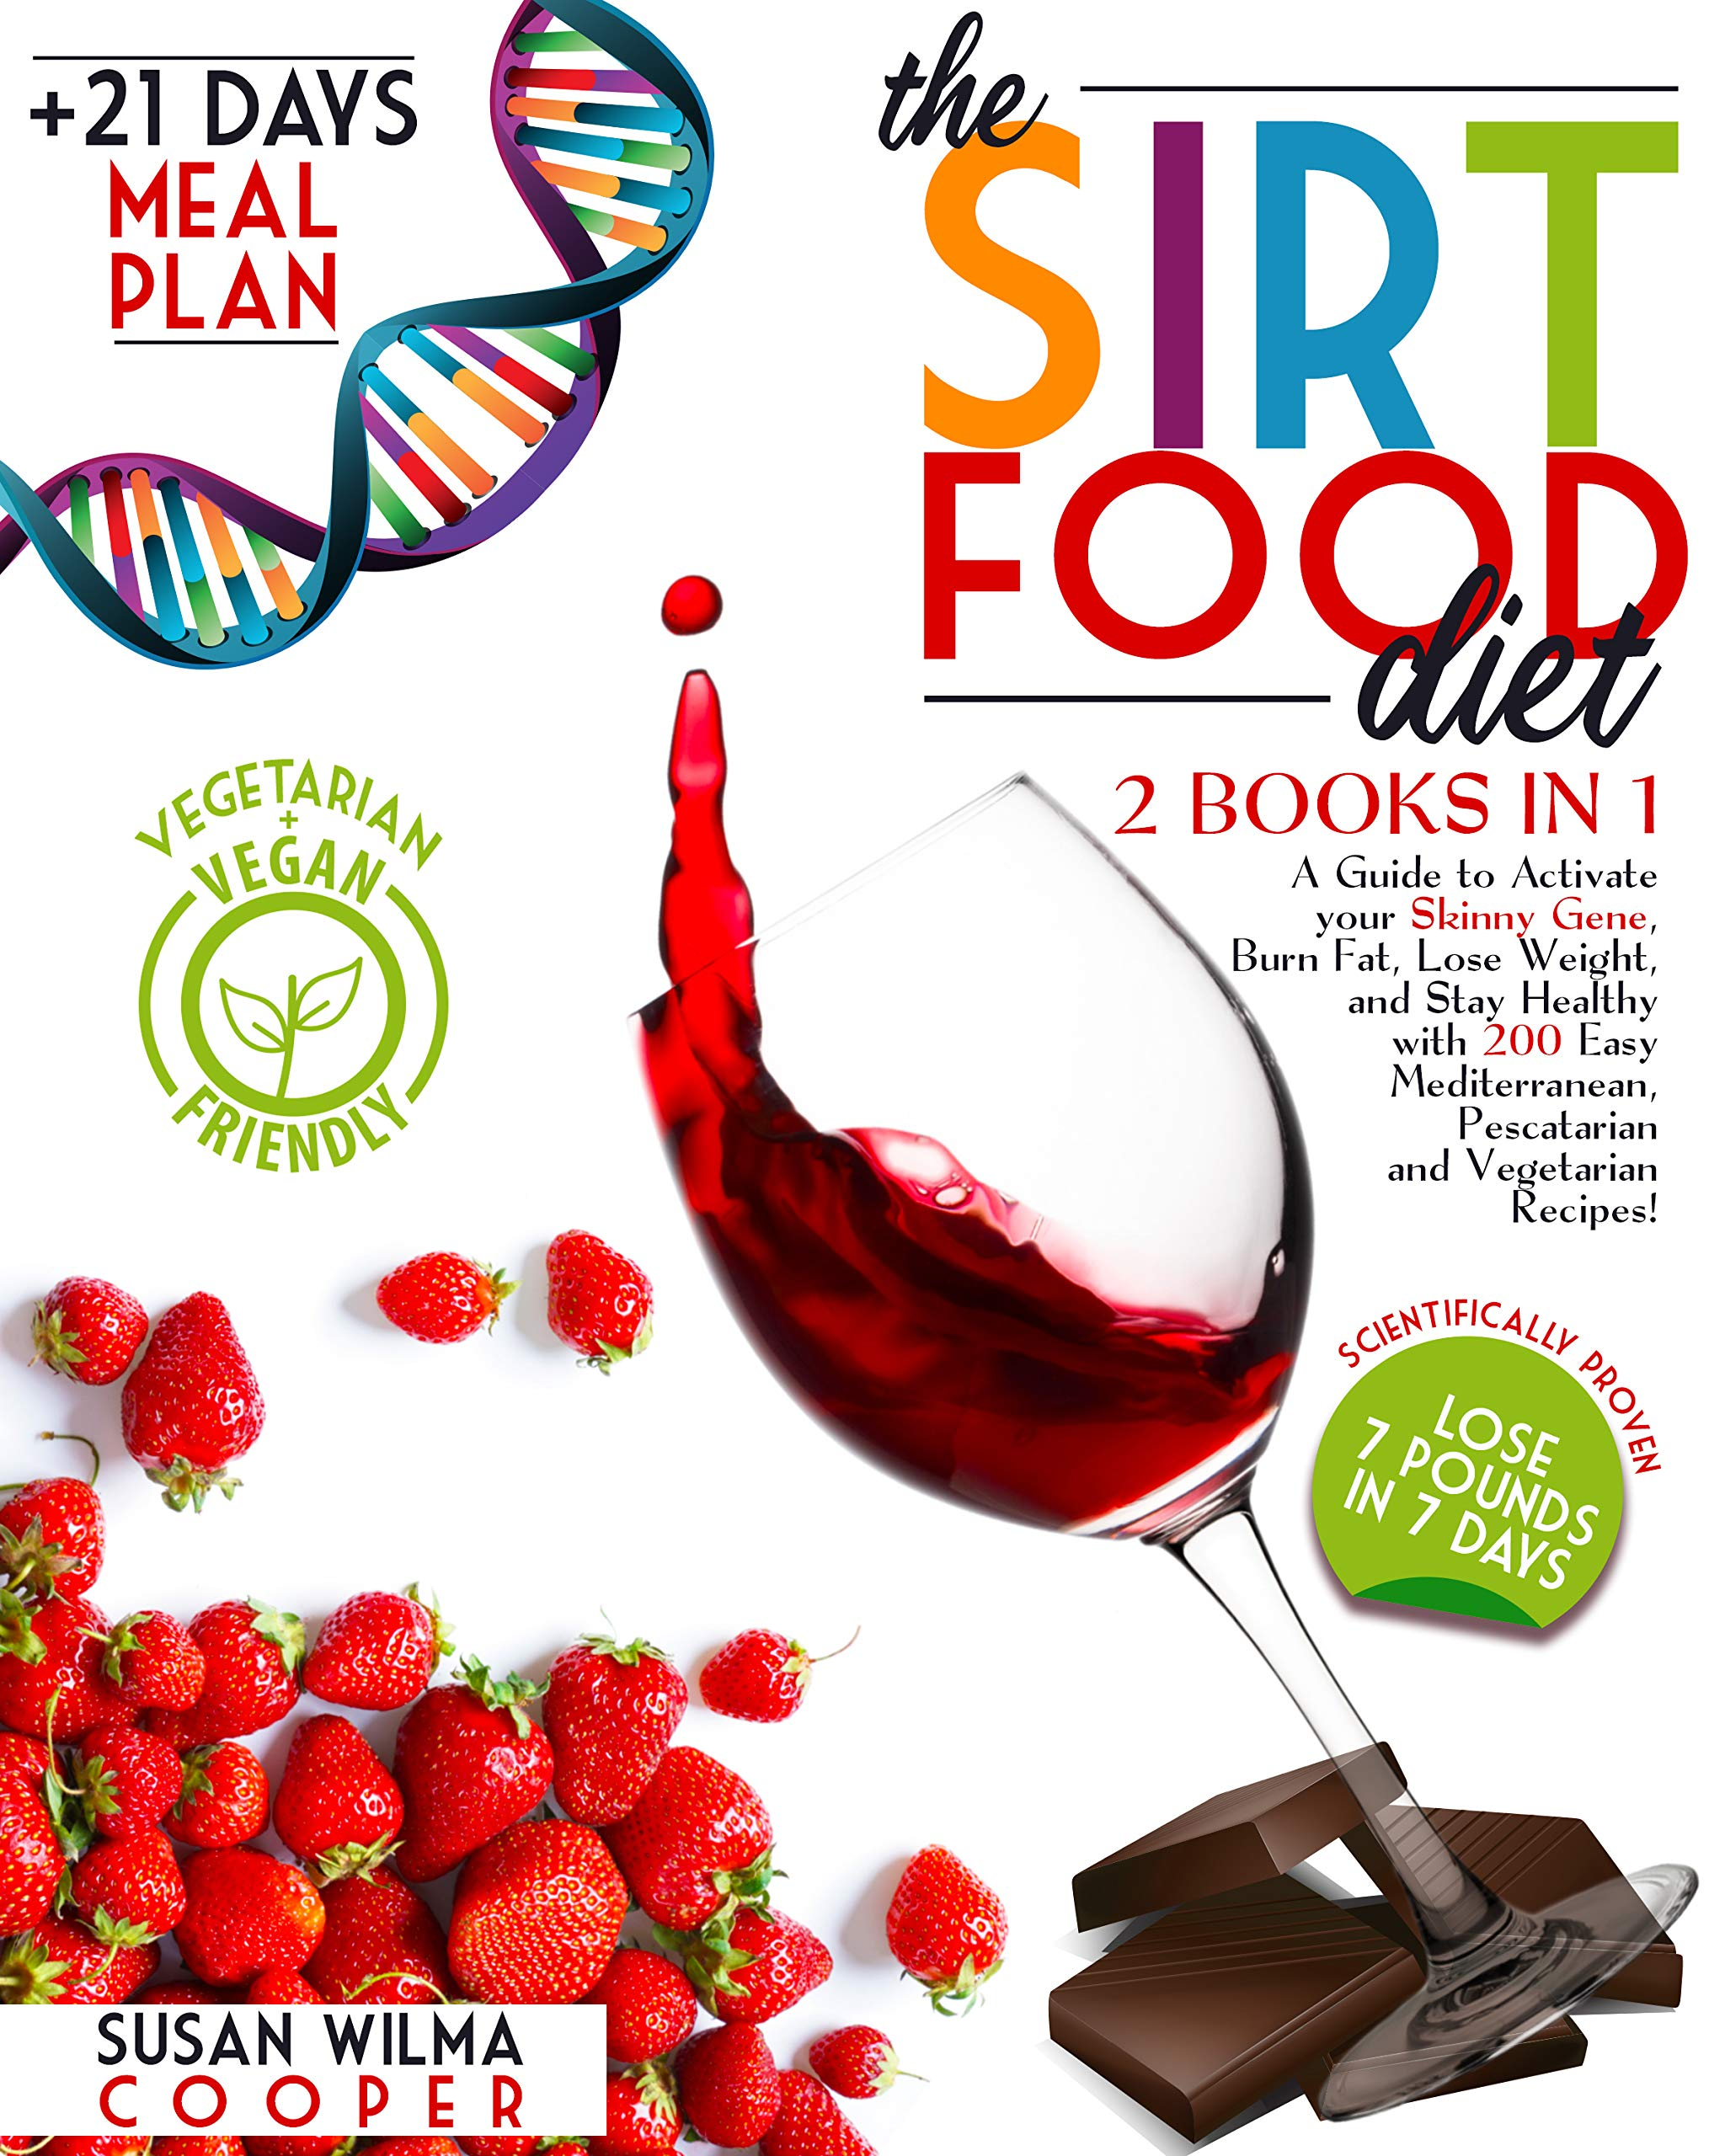 The Sirtfood Diet: 2 Books in 1: A Guide to Activate your Skinny Gene, Burn Fat, Lose Weight, and Stay Healthy with 200 Easy Mediterranean, Pescatarian and Vegetarian Recipes! + 21days Meal Plan